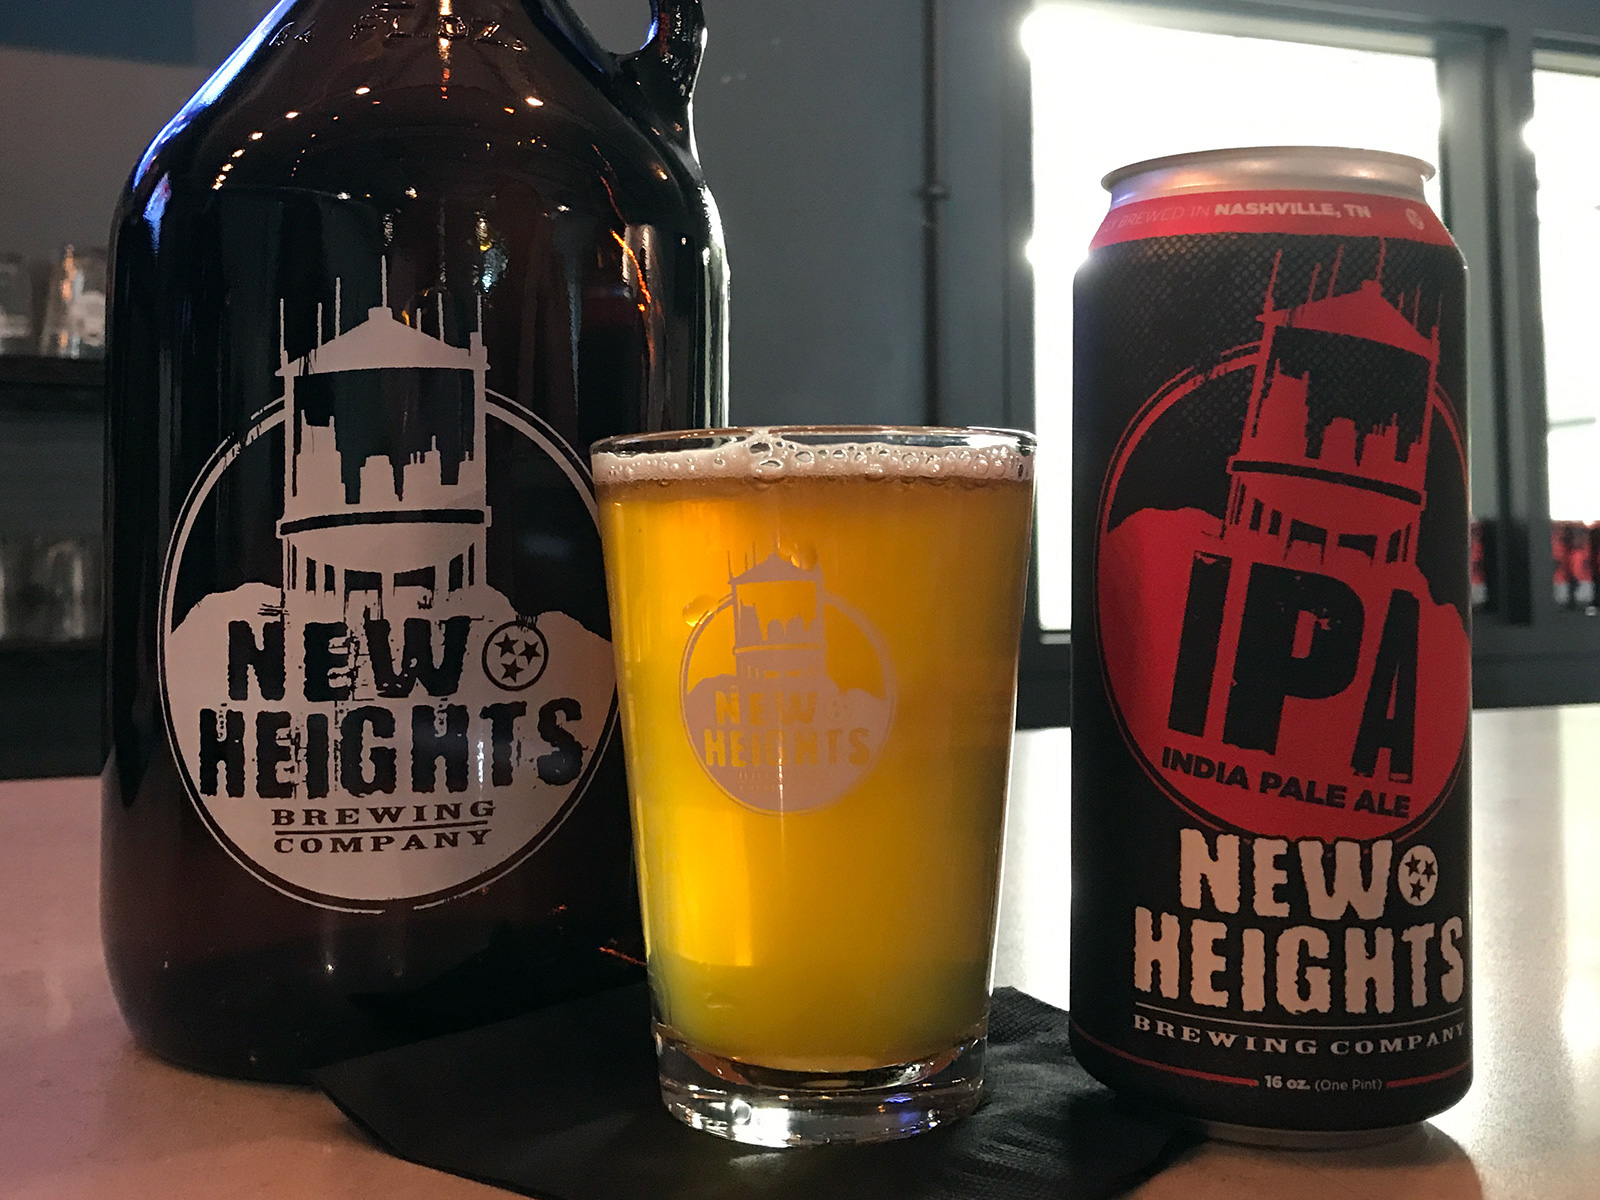 New Heights Brewing Co. in Nashville, TN by Jets Like Taxis / Hopsmash